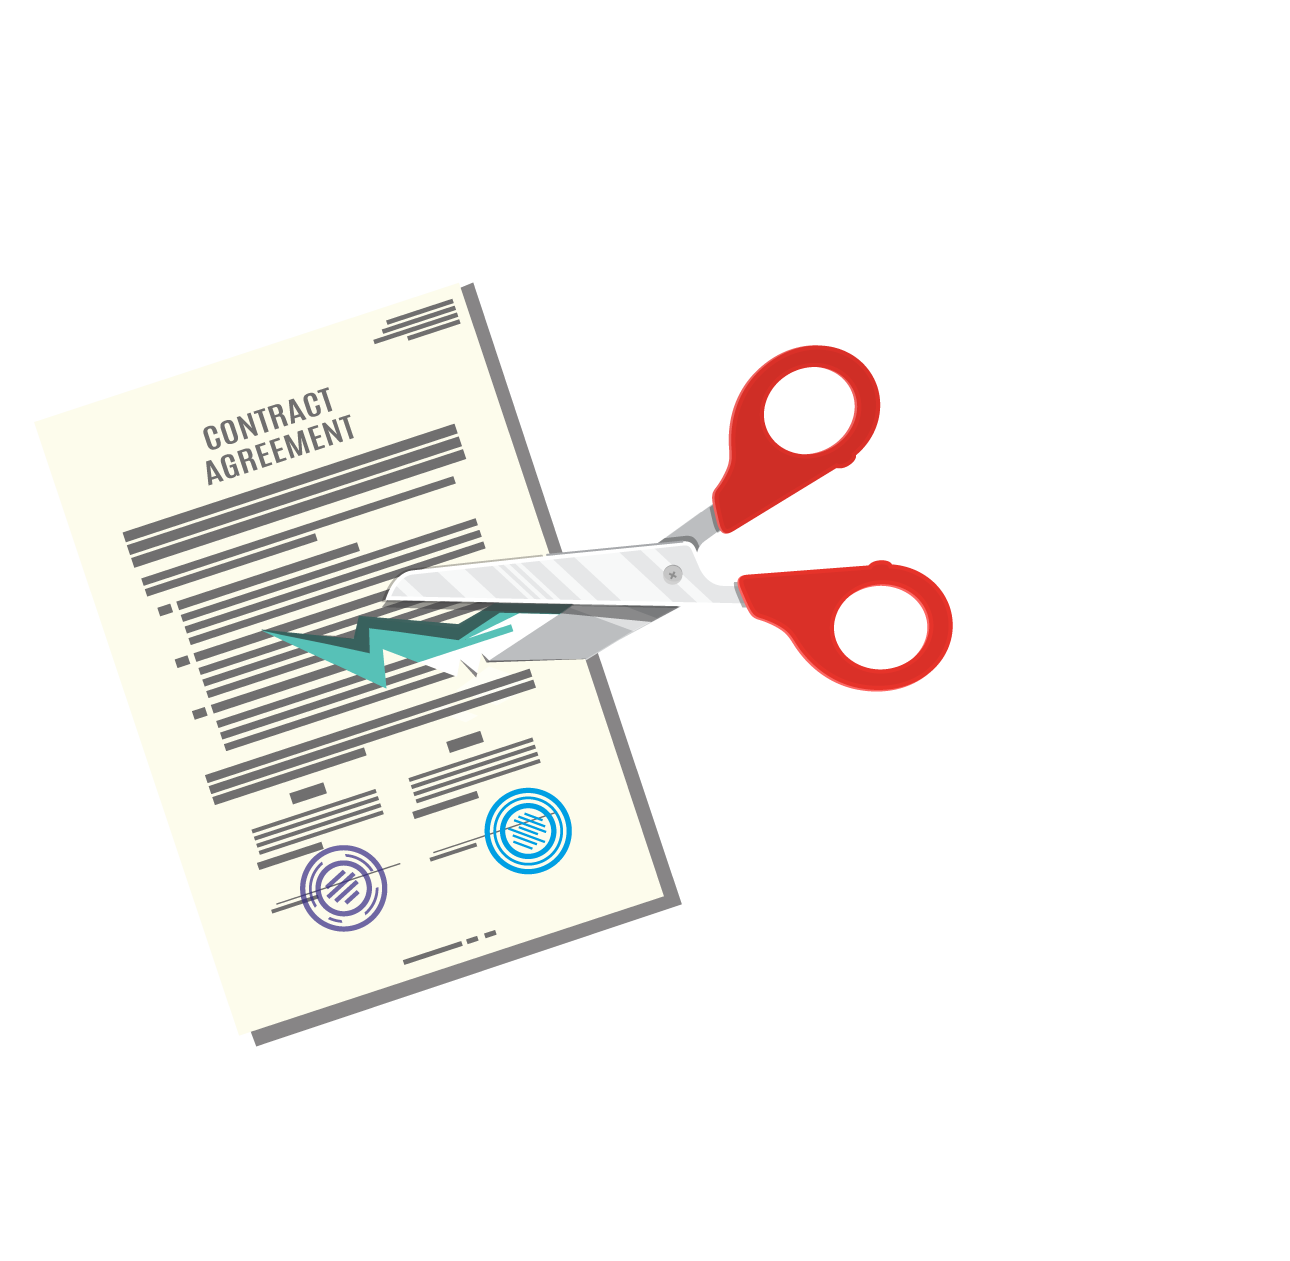 Contract being cut by a scissors graphic